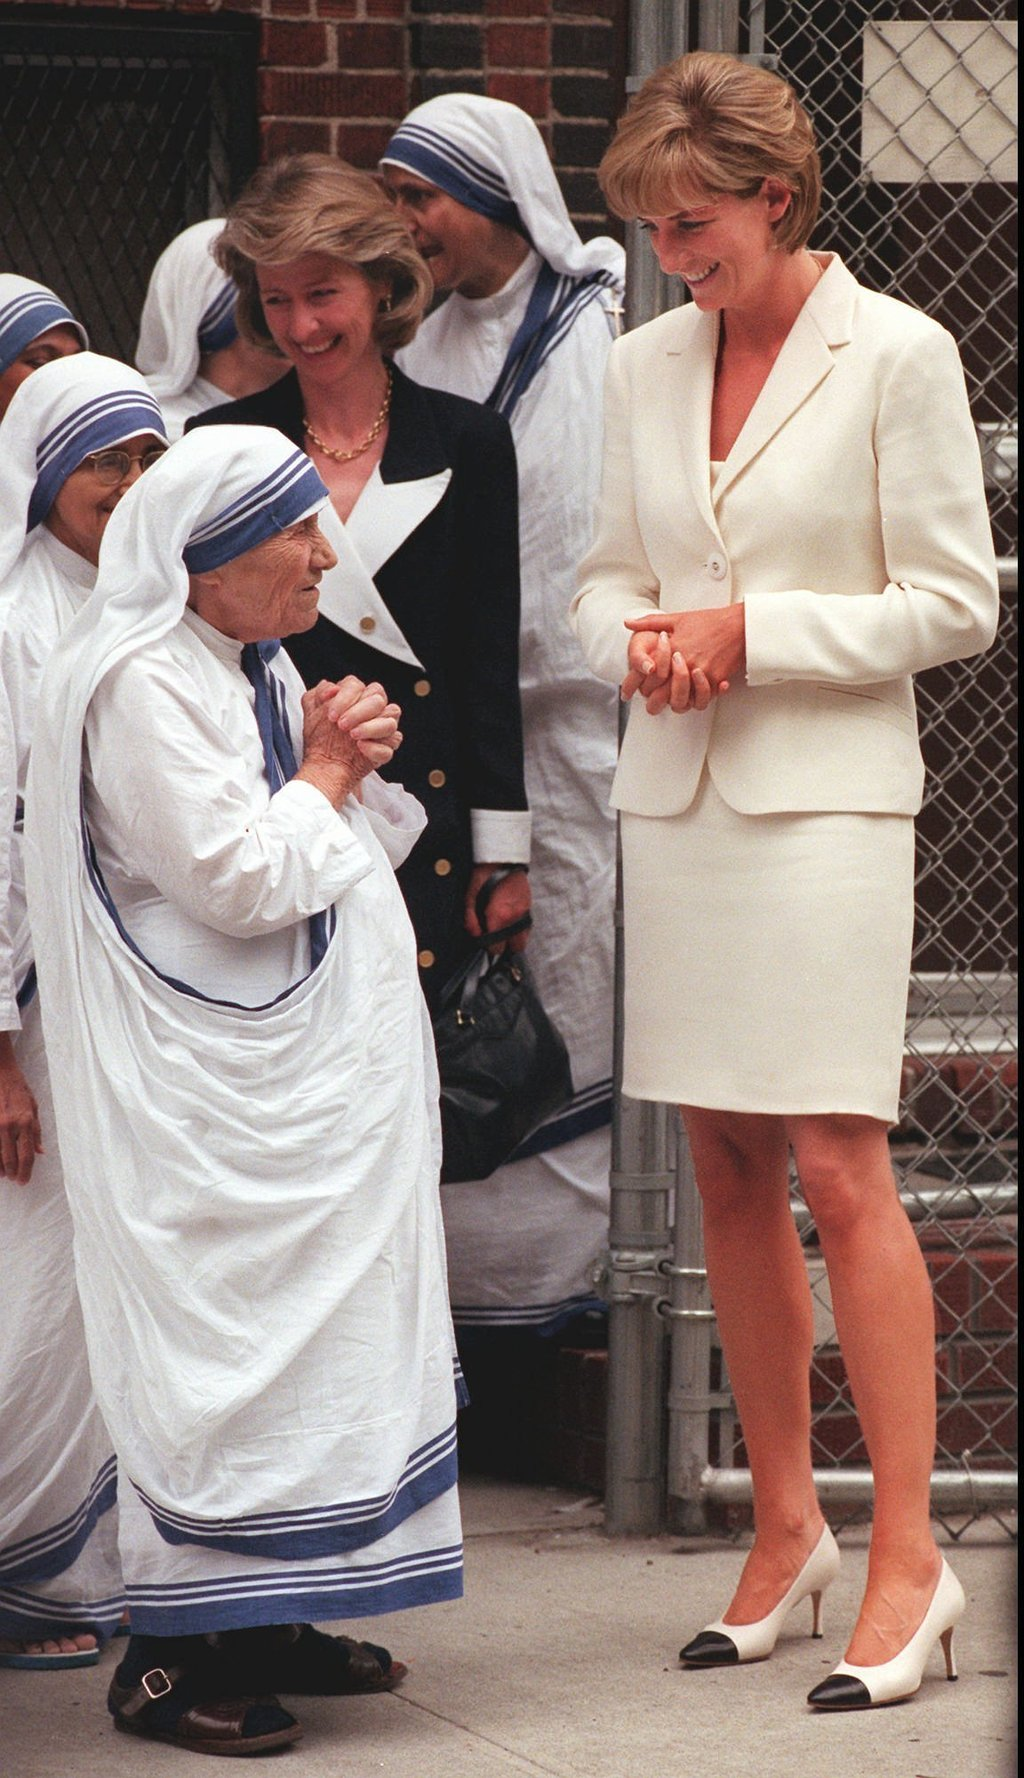 the life of princess diana Here is a timeline of the key moments in princess diana's life: -july 1, 1961: diana frances spencer is born into an aristocratic family file - in this 1980 file photo, lady diana spencer, 21, prince charles's girlfriend, is pictured at the kindergarten in st georges square, pimlico, london, where she works as a teacher.